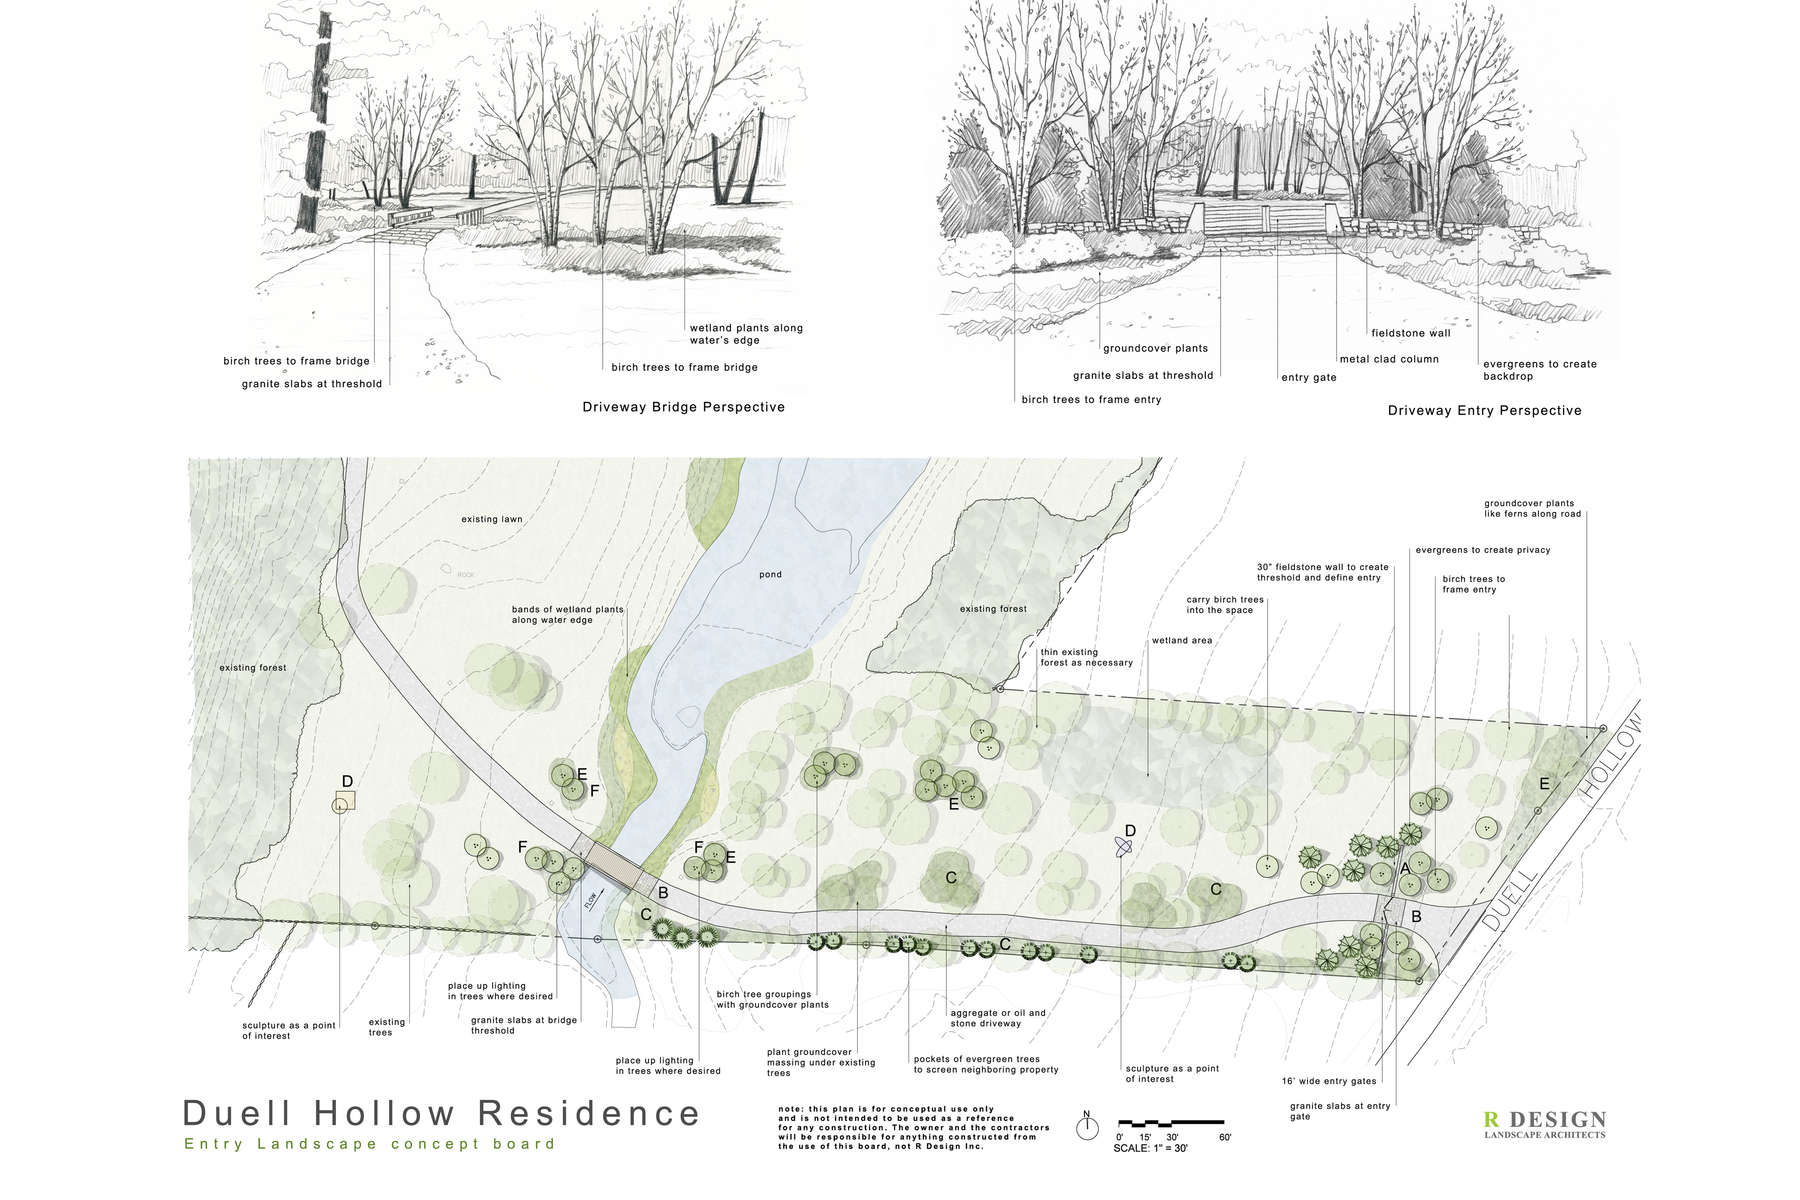 This site plan shows a new property entry sequence. This includes a new entry gate, stone walls, wetland plantings, updated bridge and tree plantings to provide privacy and restore the site's ecology.